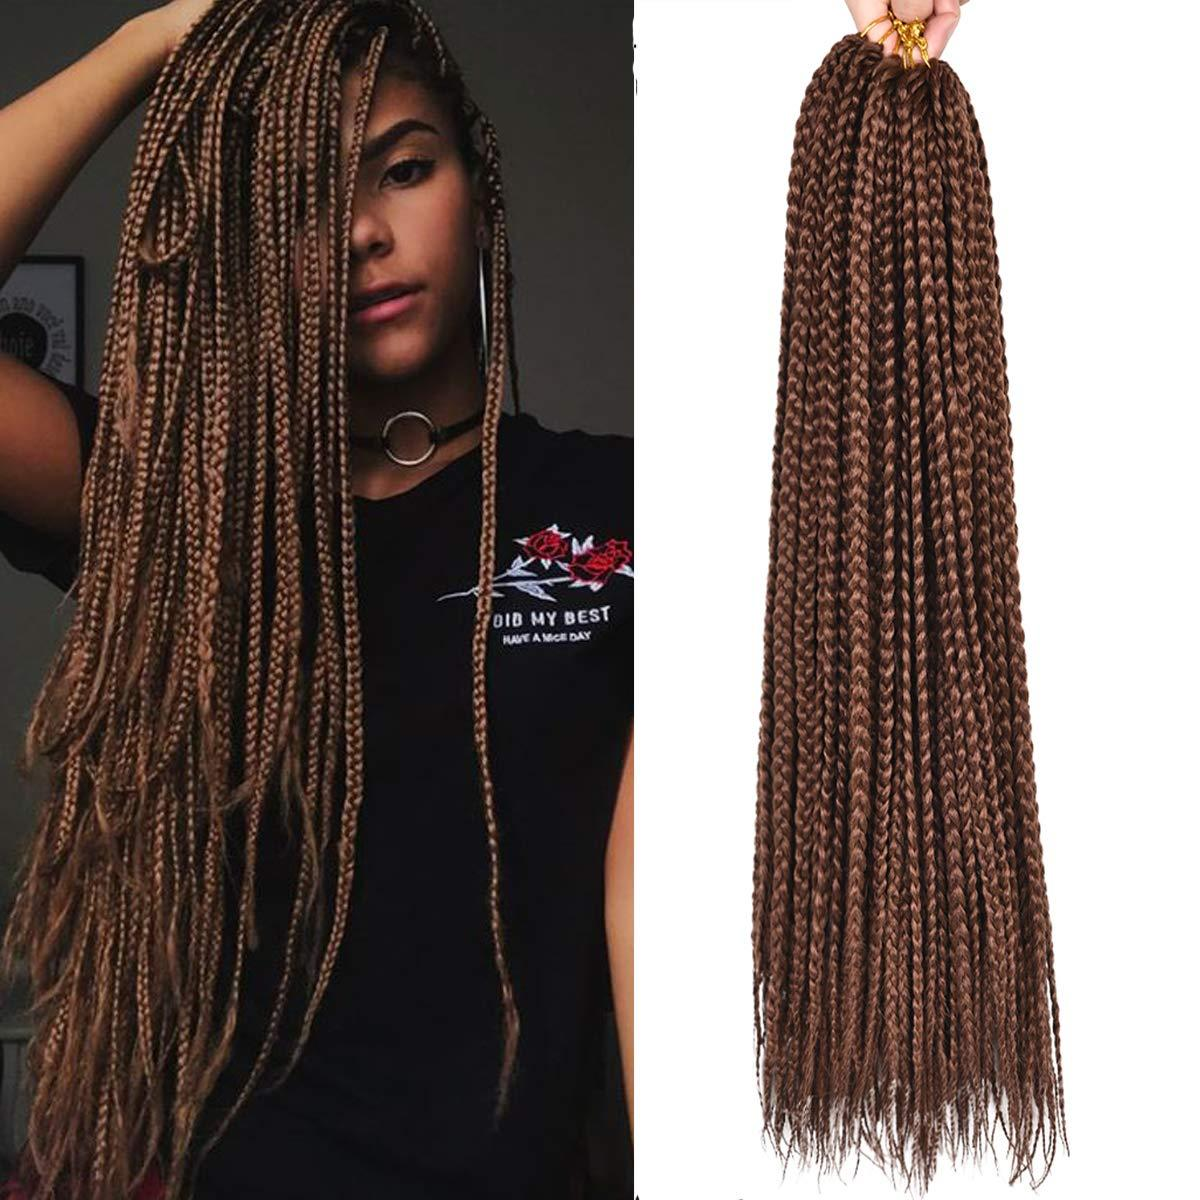 2019 22inches Box Braid Crochet Braids Hair Extensions Ombre